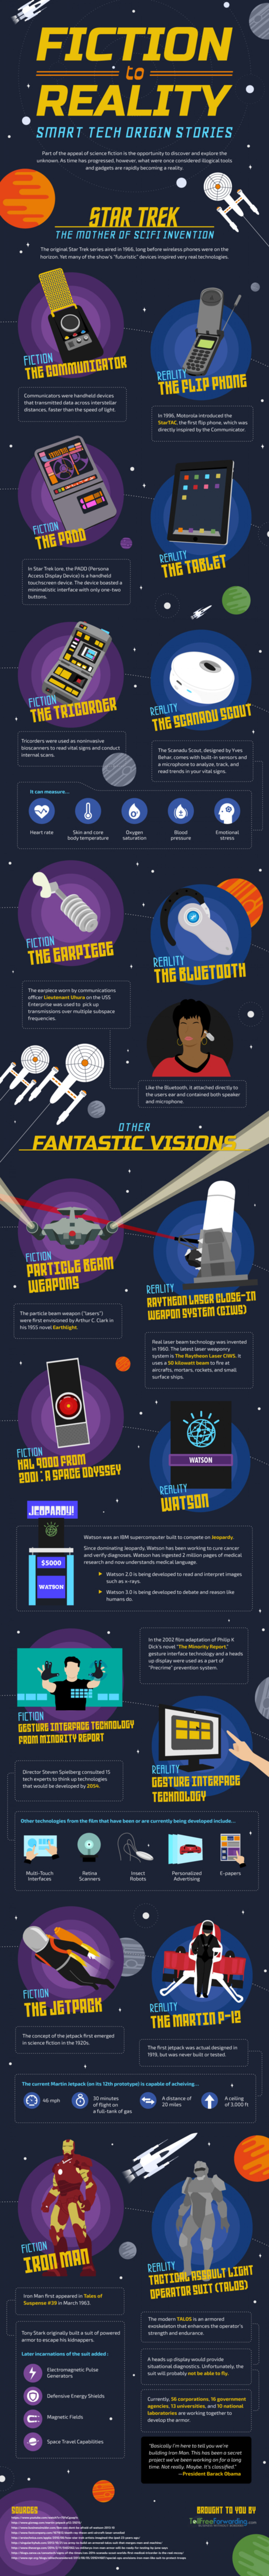 Fiction to Reality: Smart Tech Origin Stories Infographic